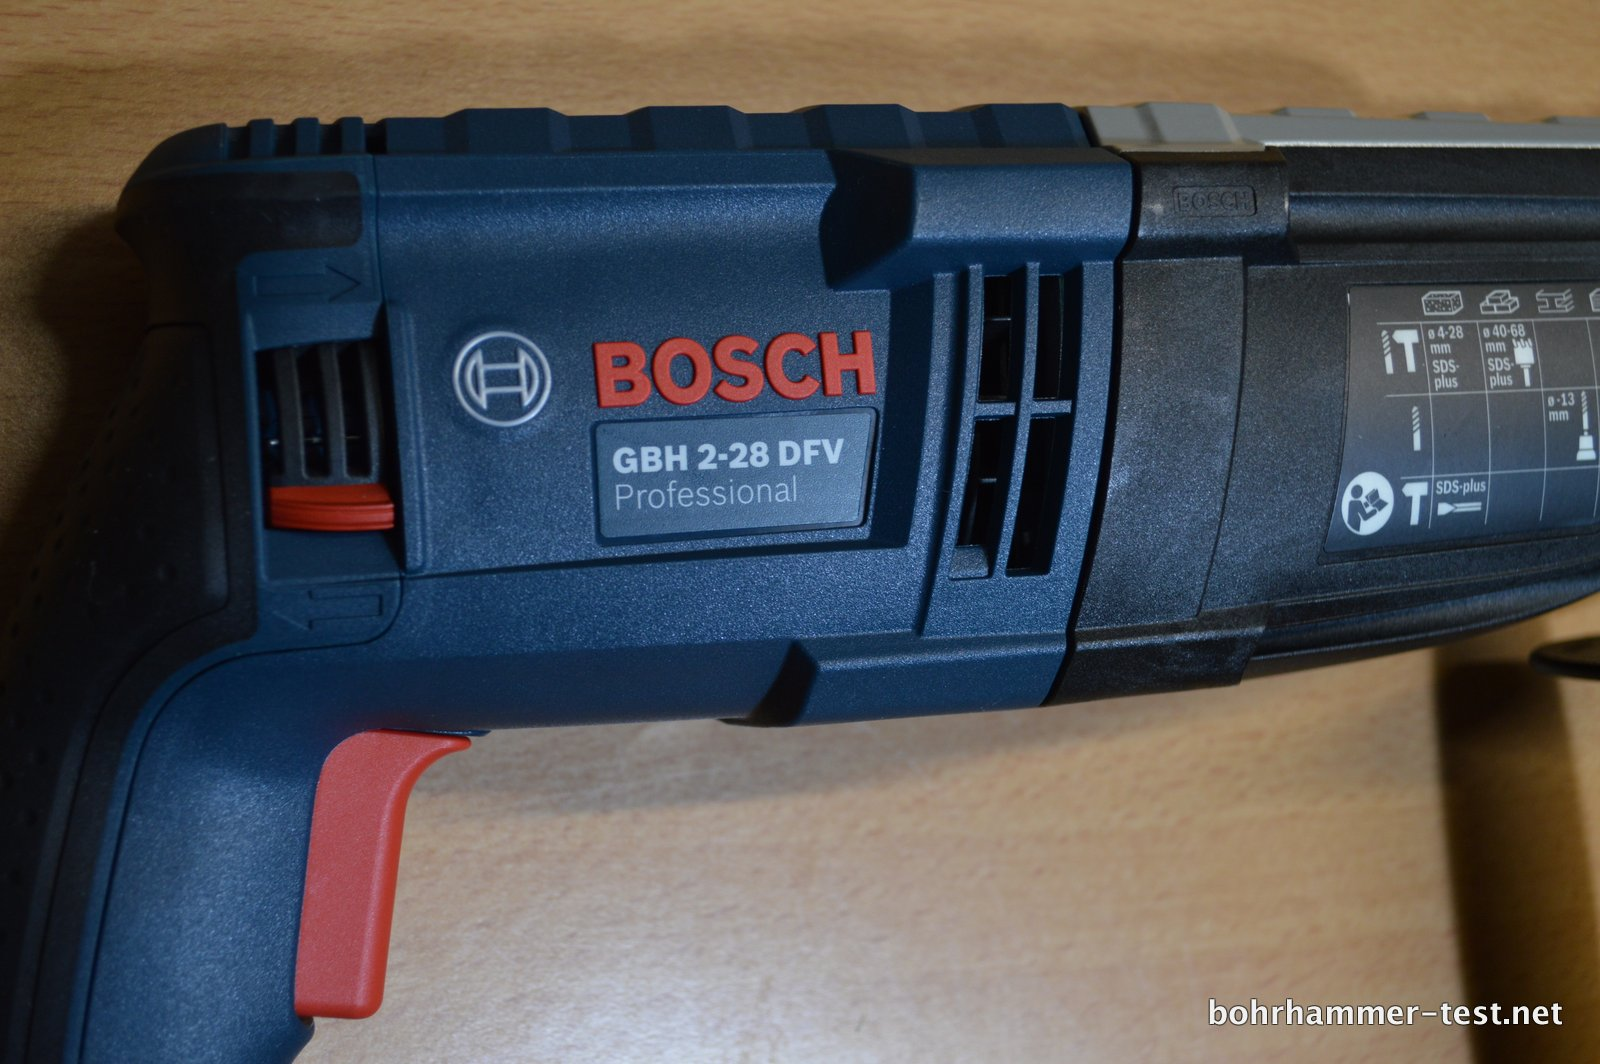 bosch gbh 2 28 dfv bohrhammer im test neu professional mit l boxx. Black Bedroom Furniture Sets. Home Design Ideas